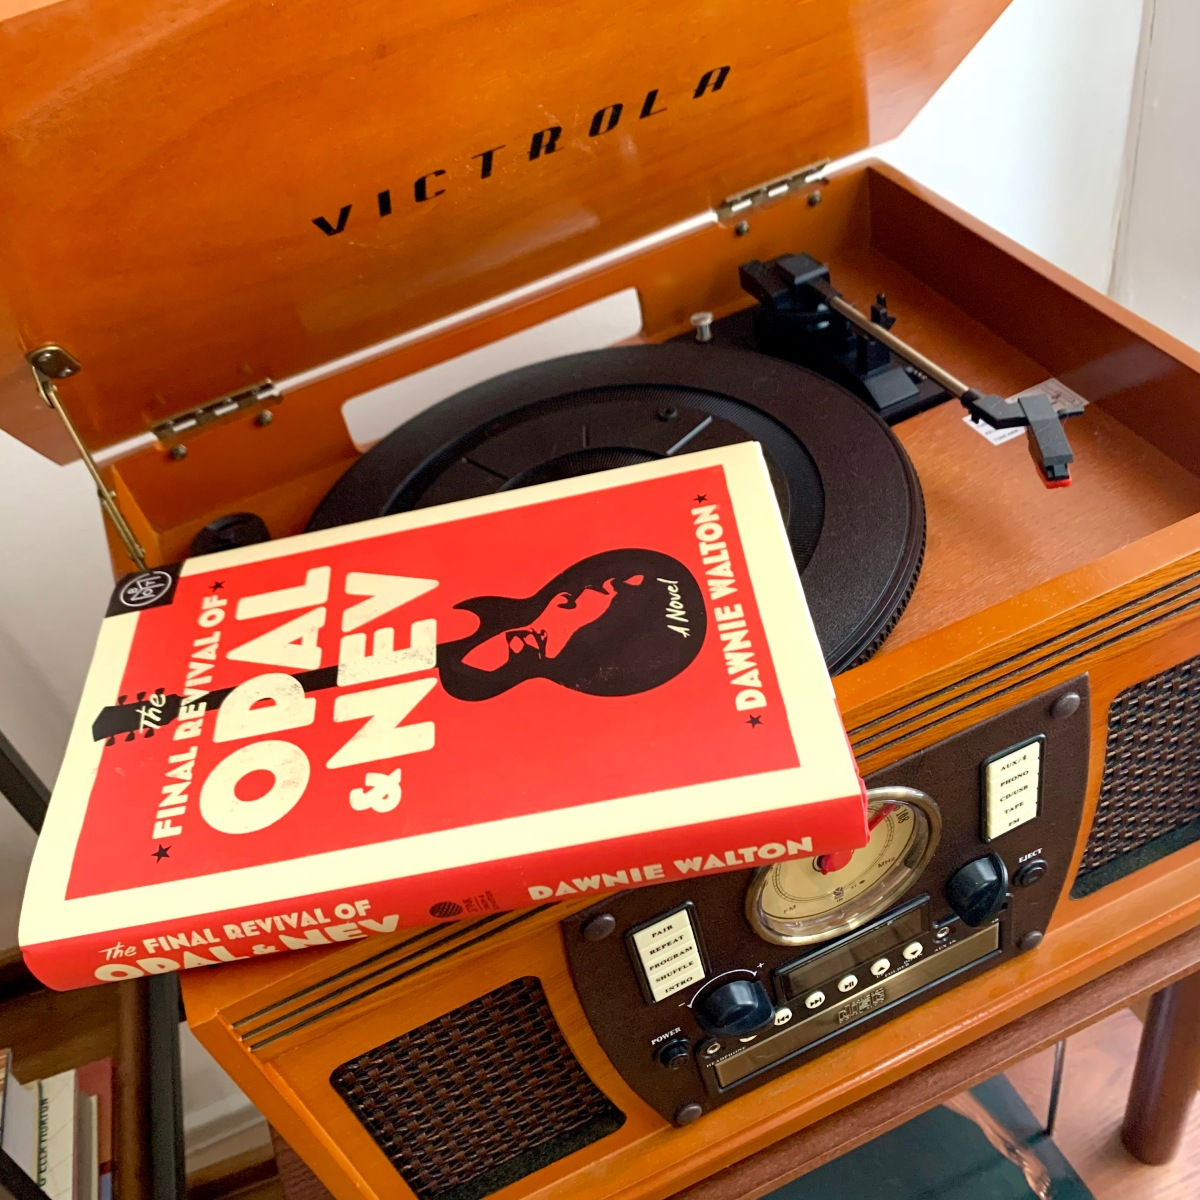 A copy of The Last Revival of Opal and Nev by Dawnie Walton, a red hardcover book with a guitar on the front, set on top of my Victrola record player.